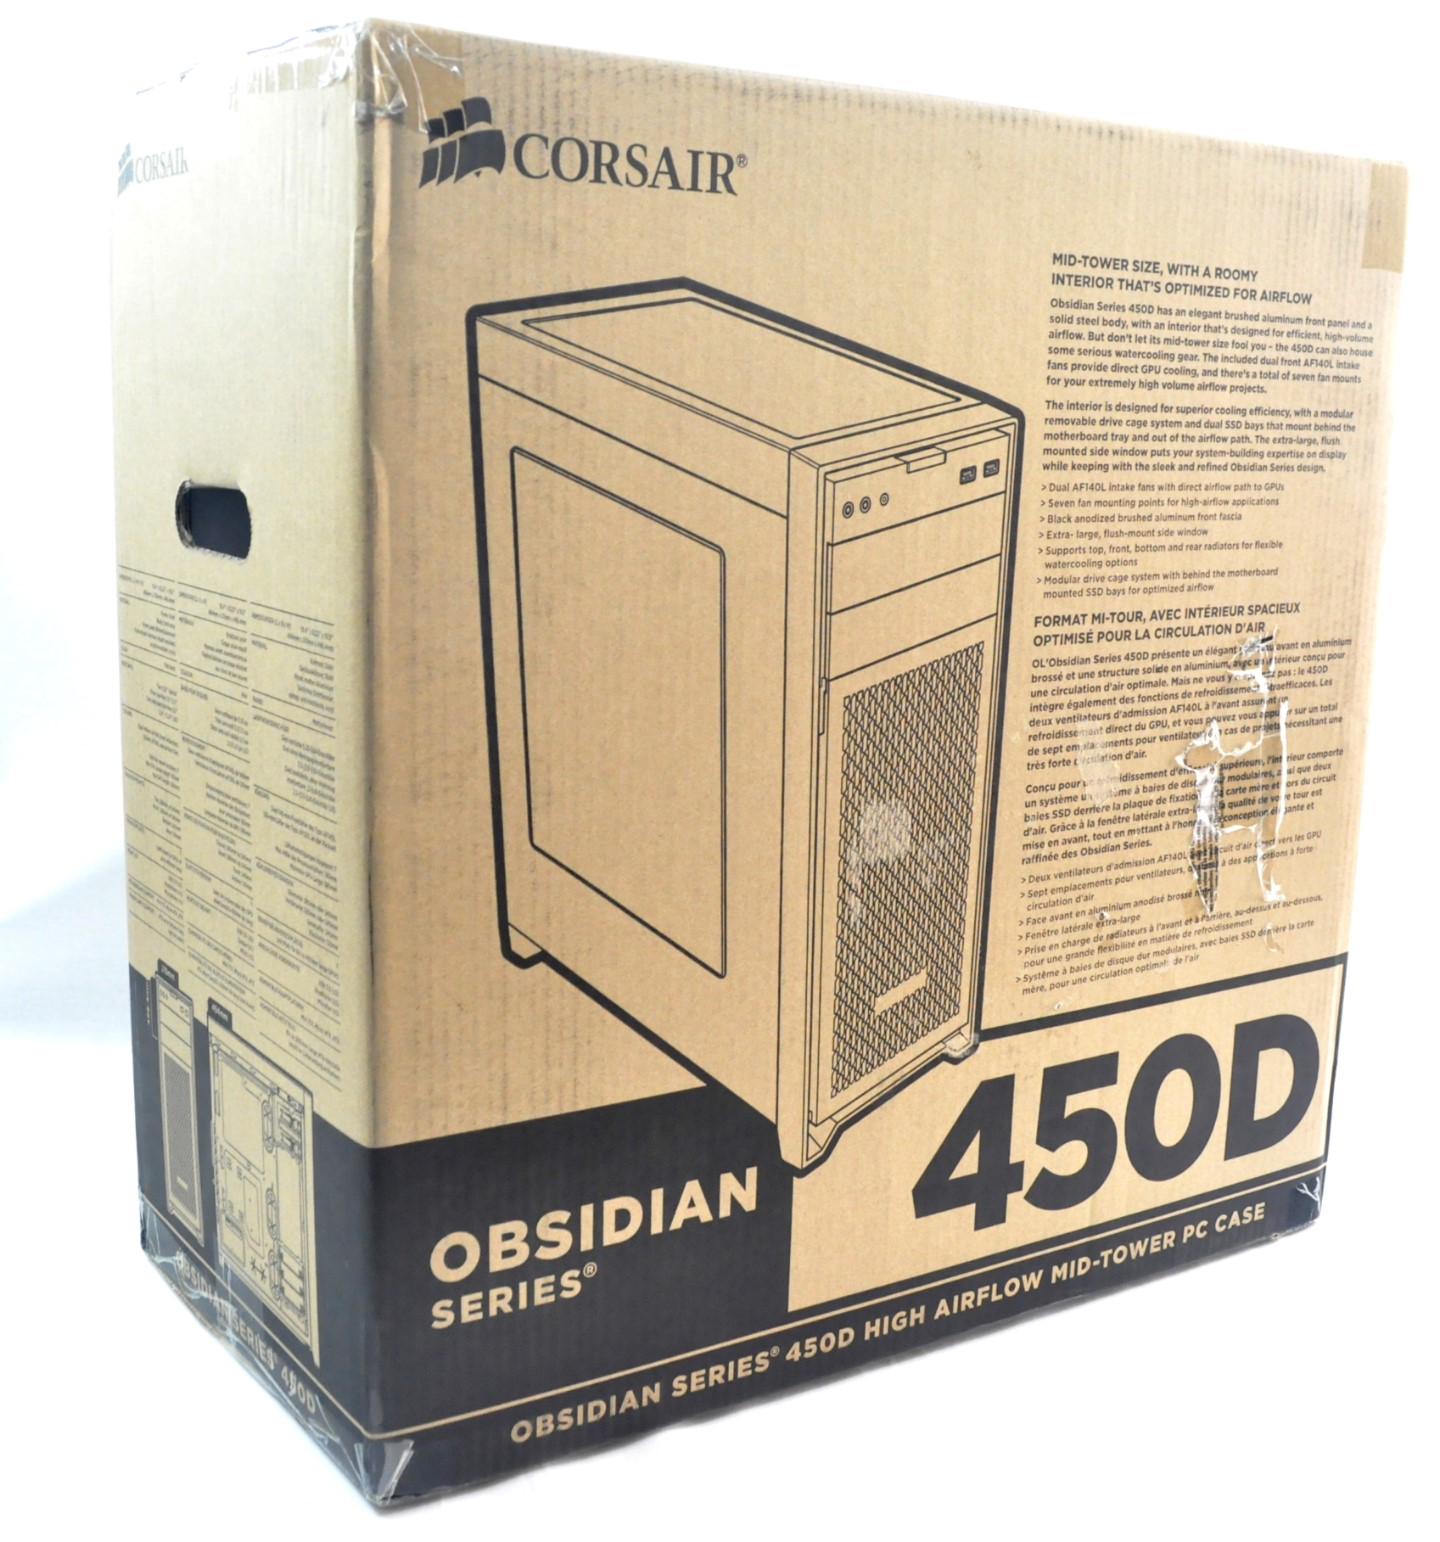 Corsair Obsidian 450D Case Review